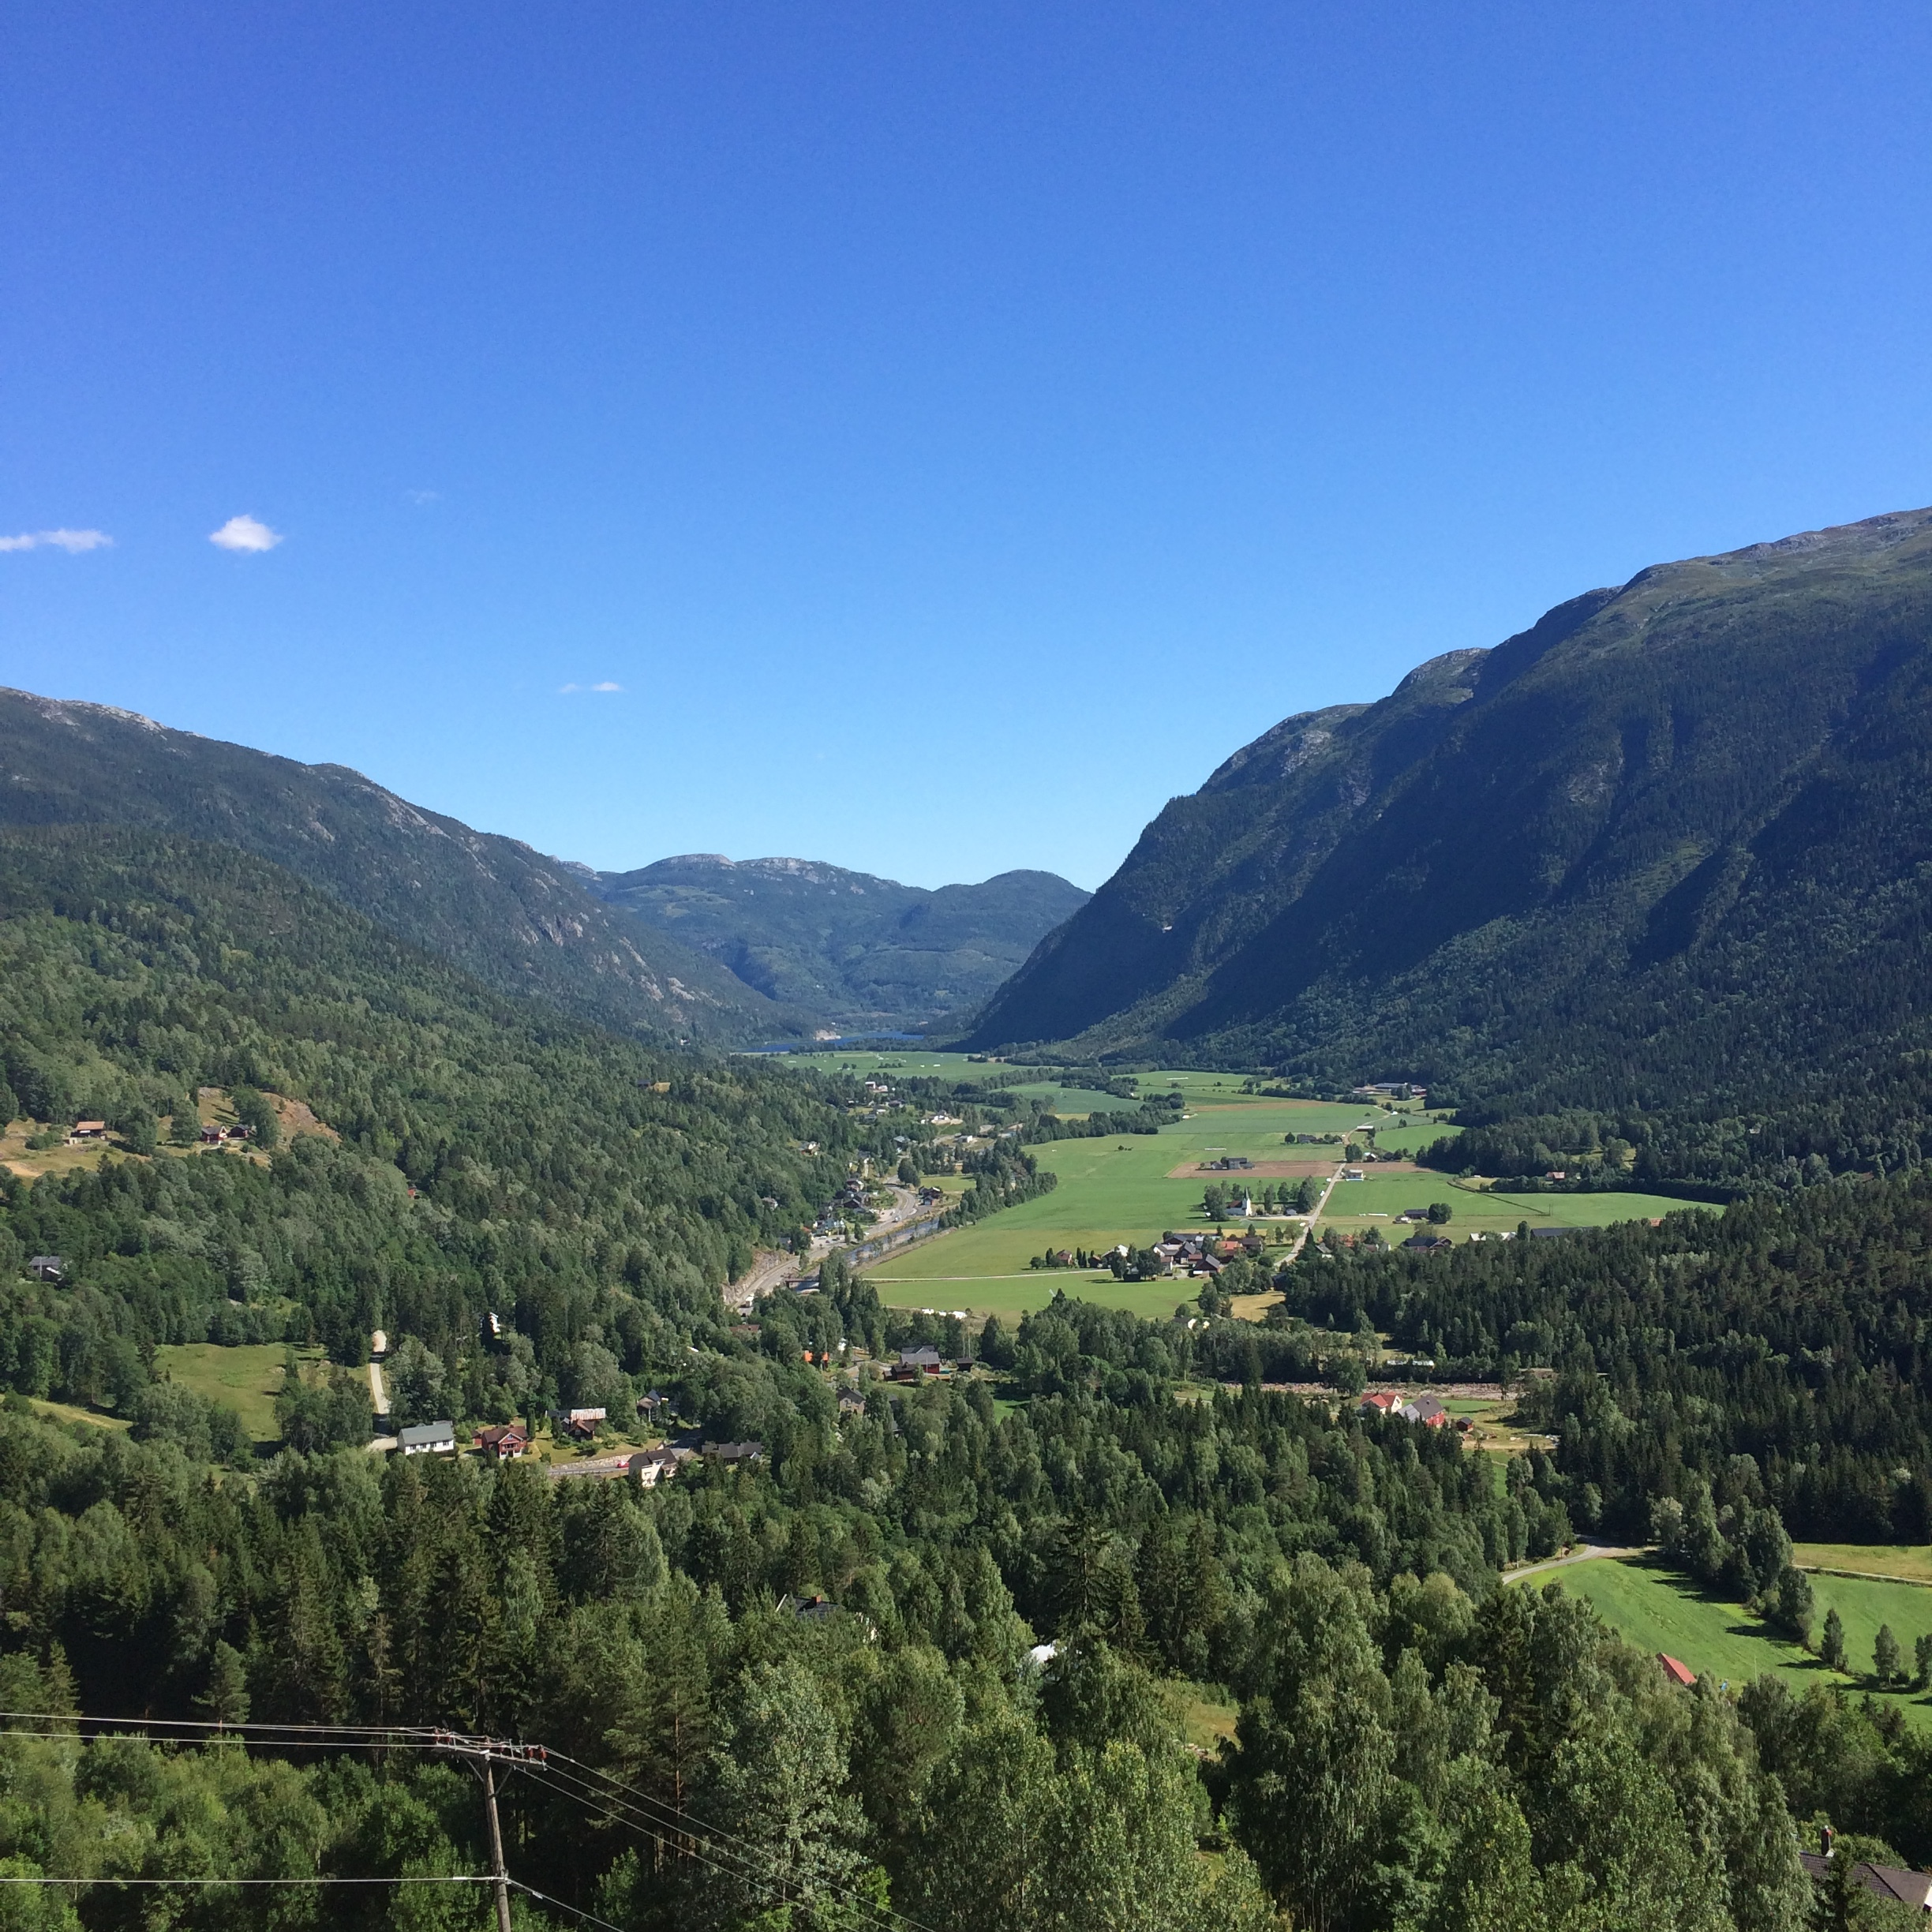 View from the drive through Telemark.